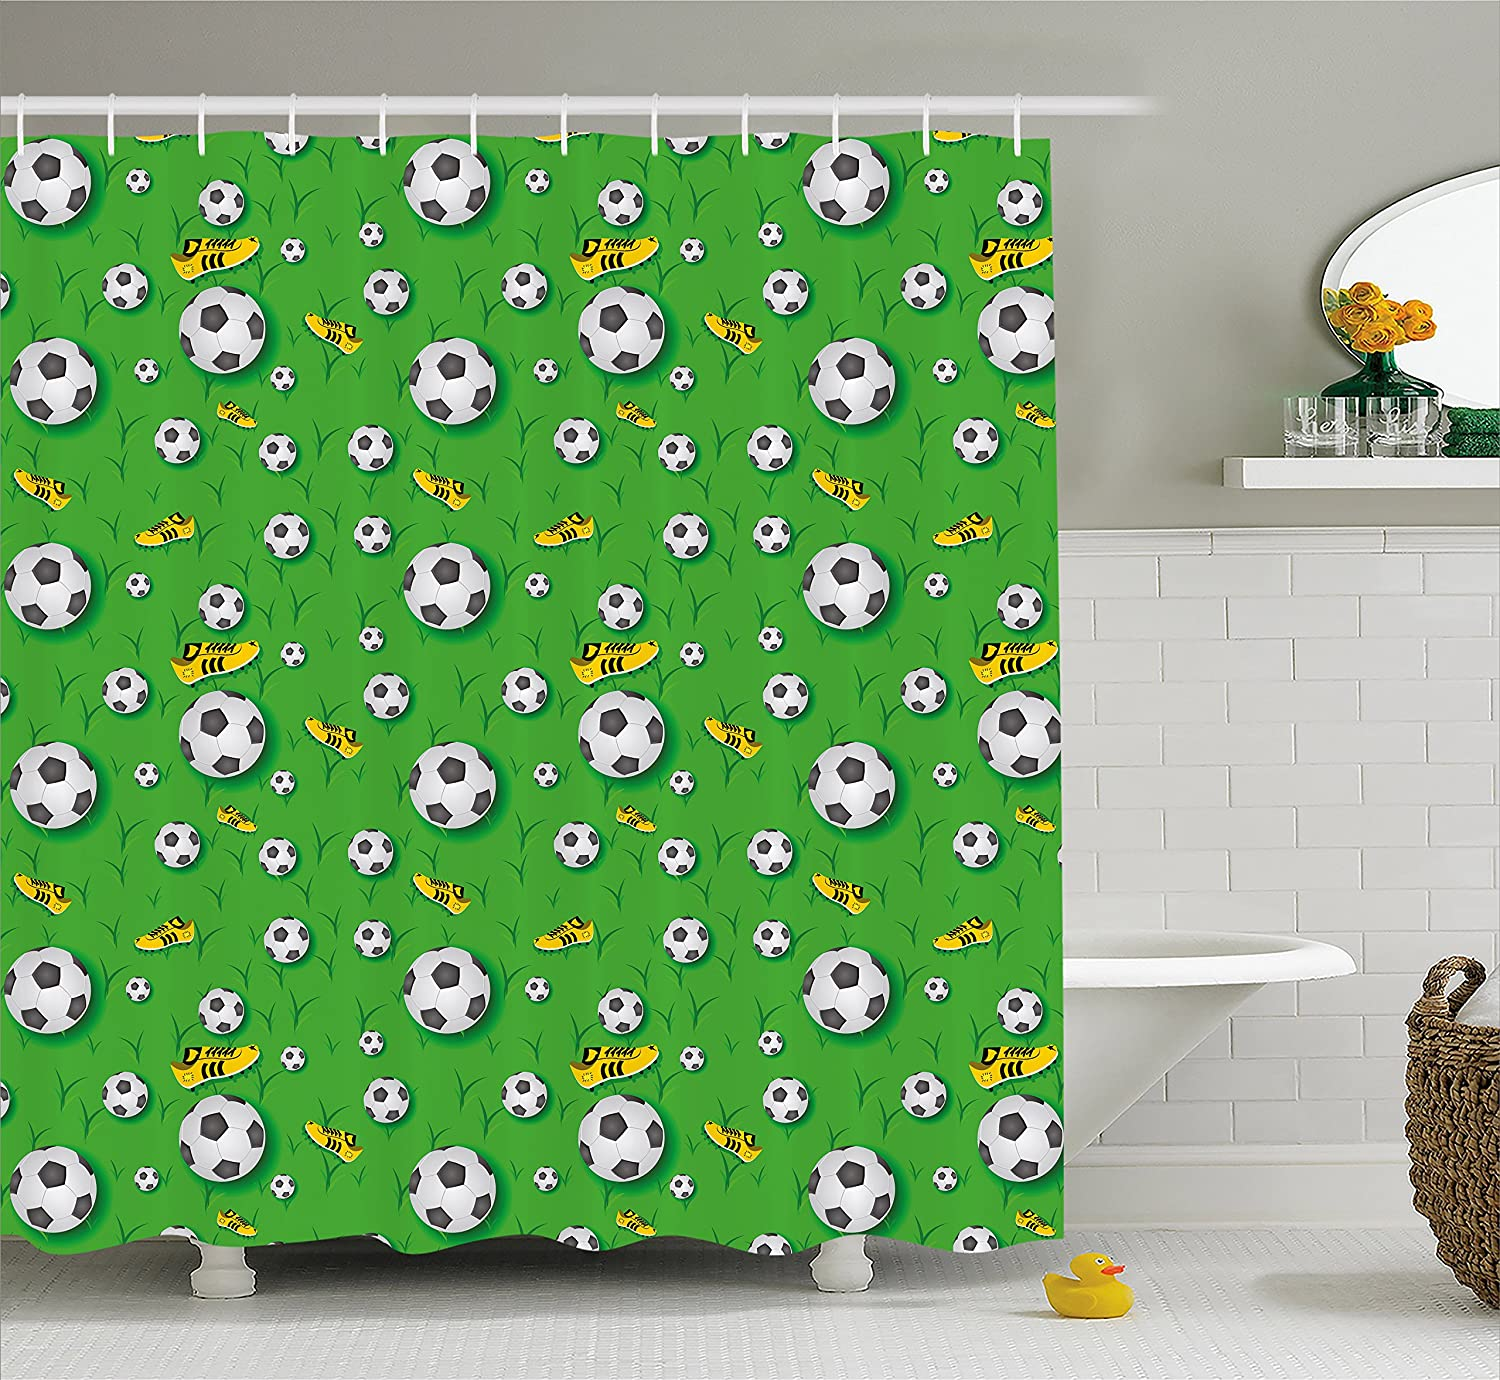 Ambesonne Soccer Shower Curtain Professional Player Athletics Pattern Football Shoes Balls On Grass Fabric Bathroom Decor Set With Hooks 84 Inches Extra